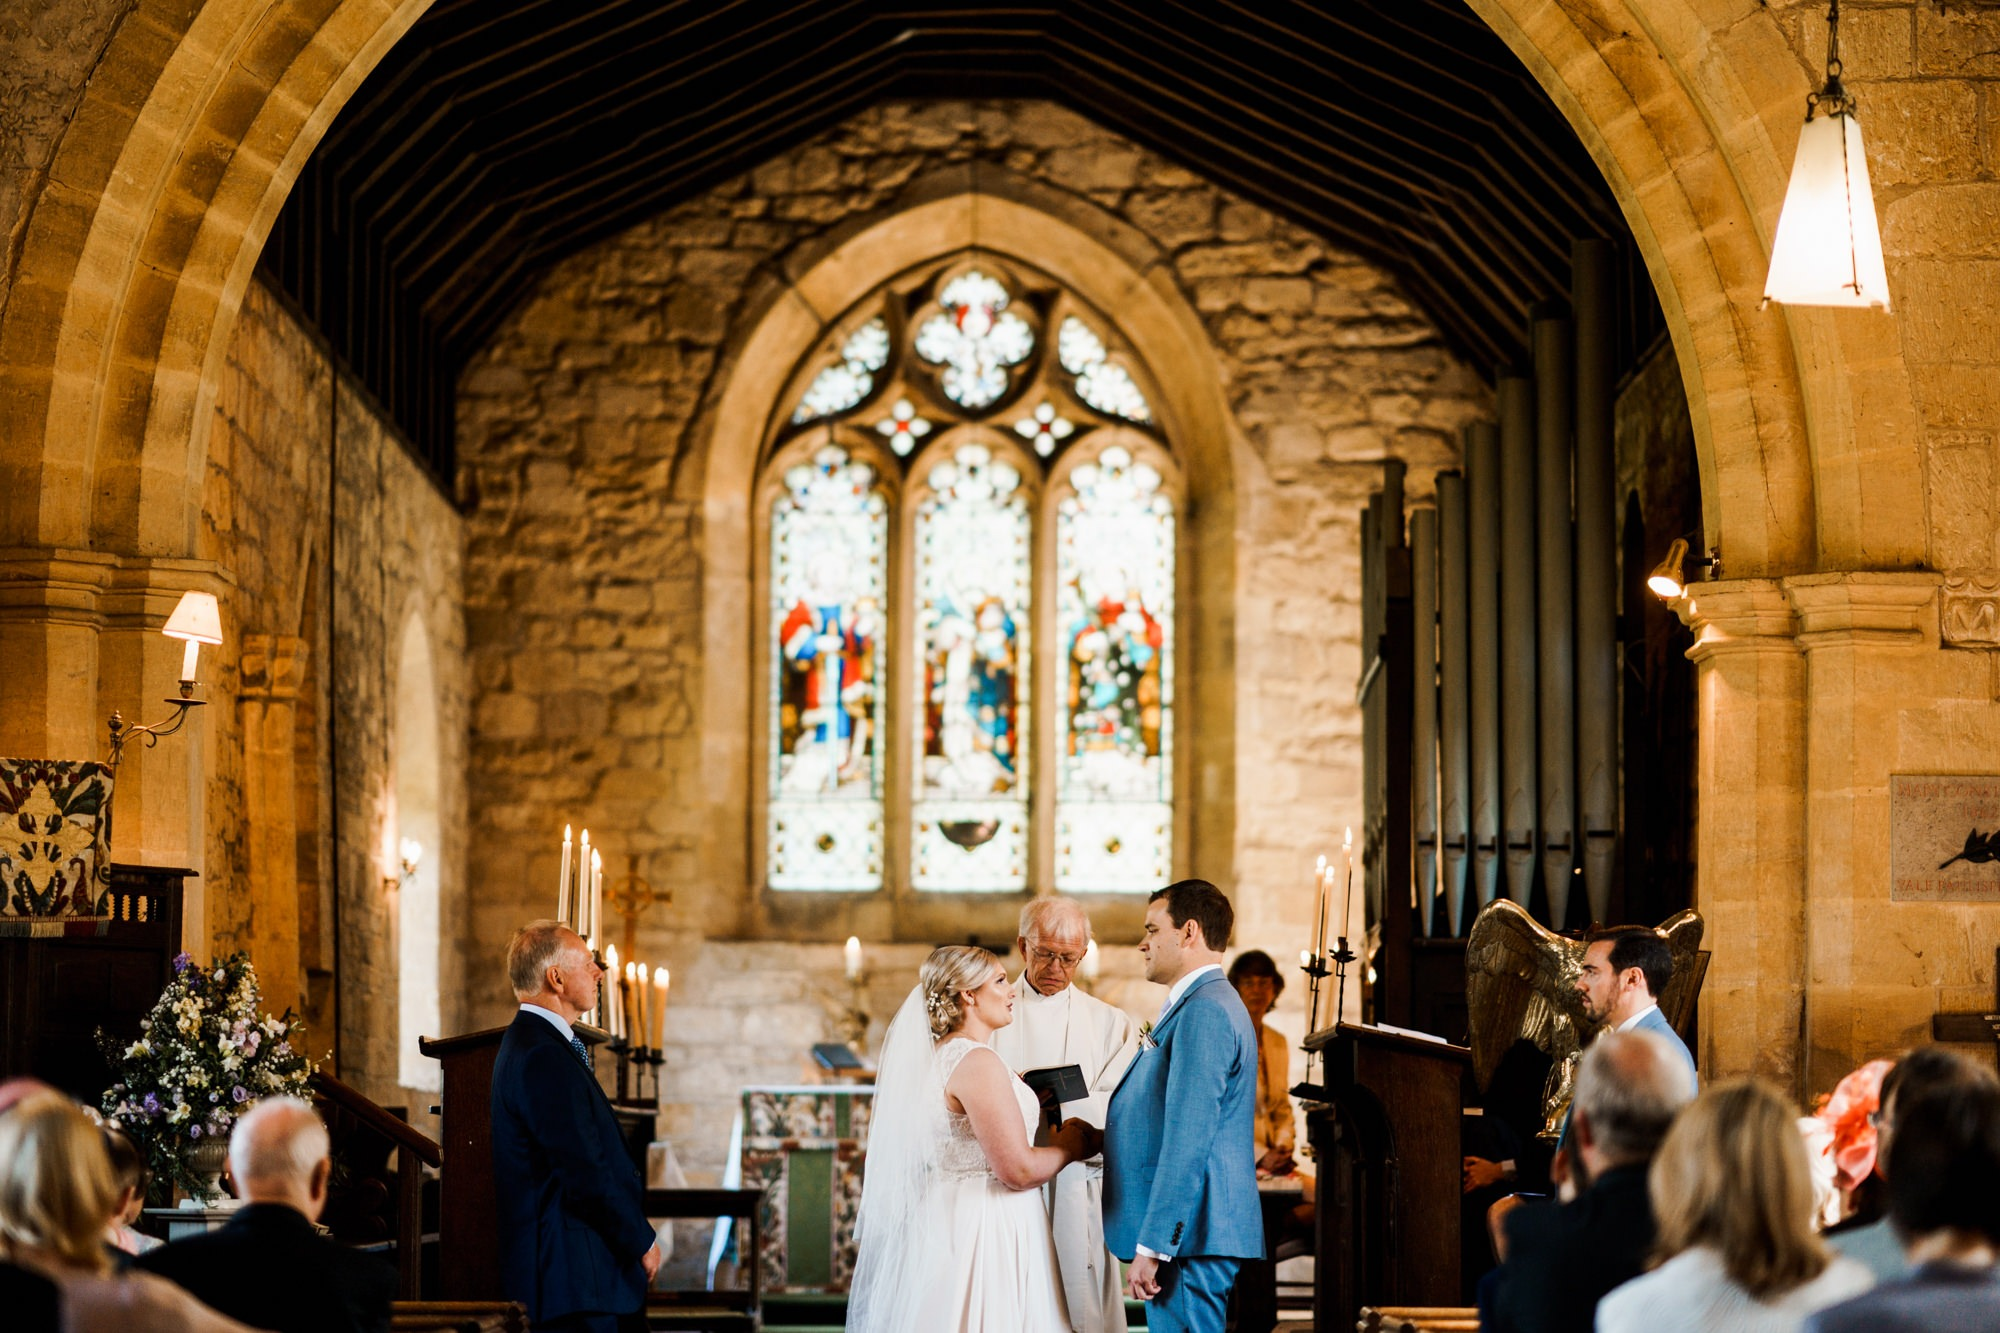 wedding ceremony in church viewed from back